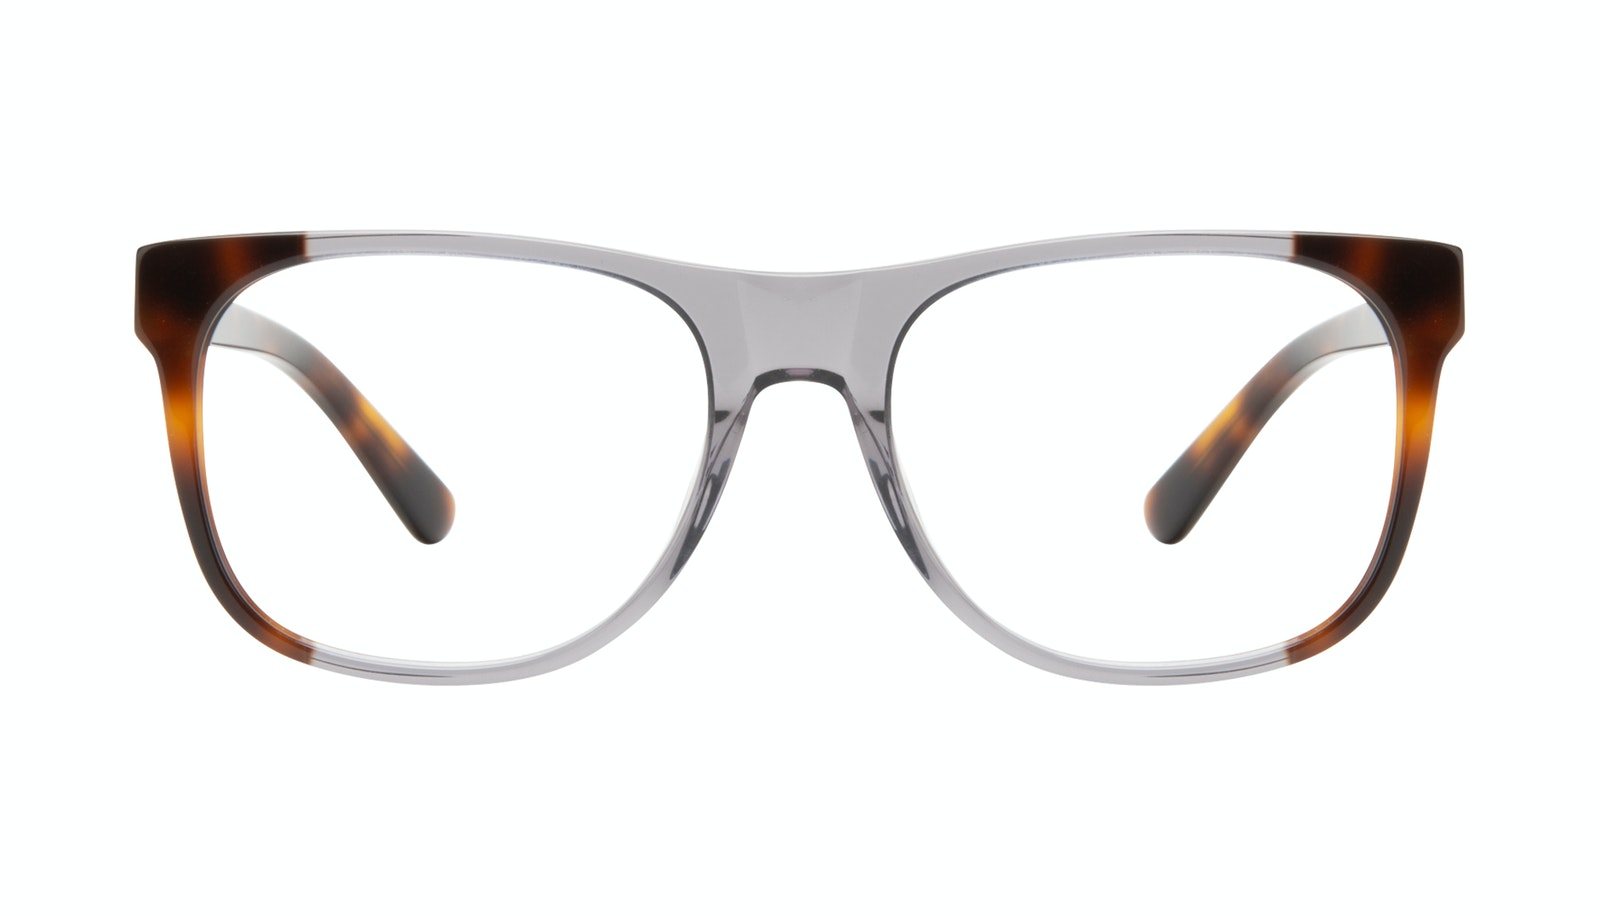 4ba593698cef Affordable Fashion Glasses Square Eyeglasses Men Make Smokey Tort